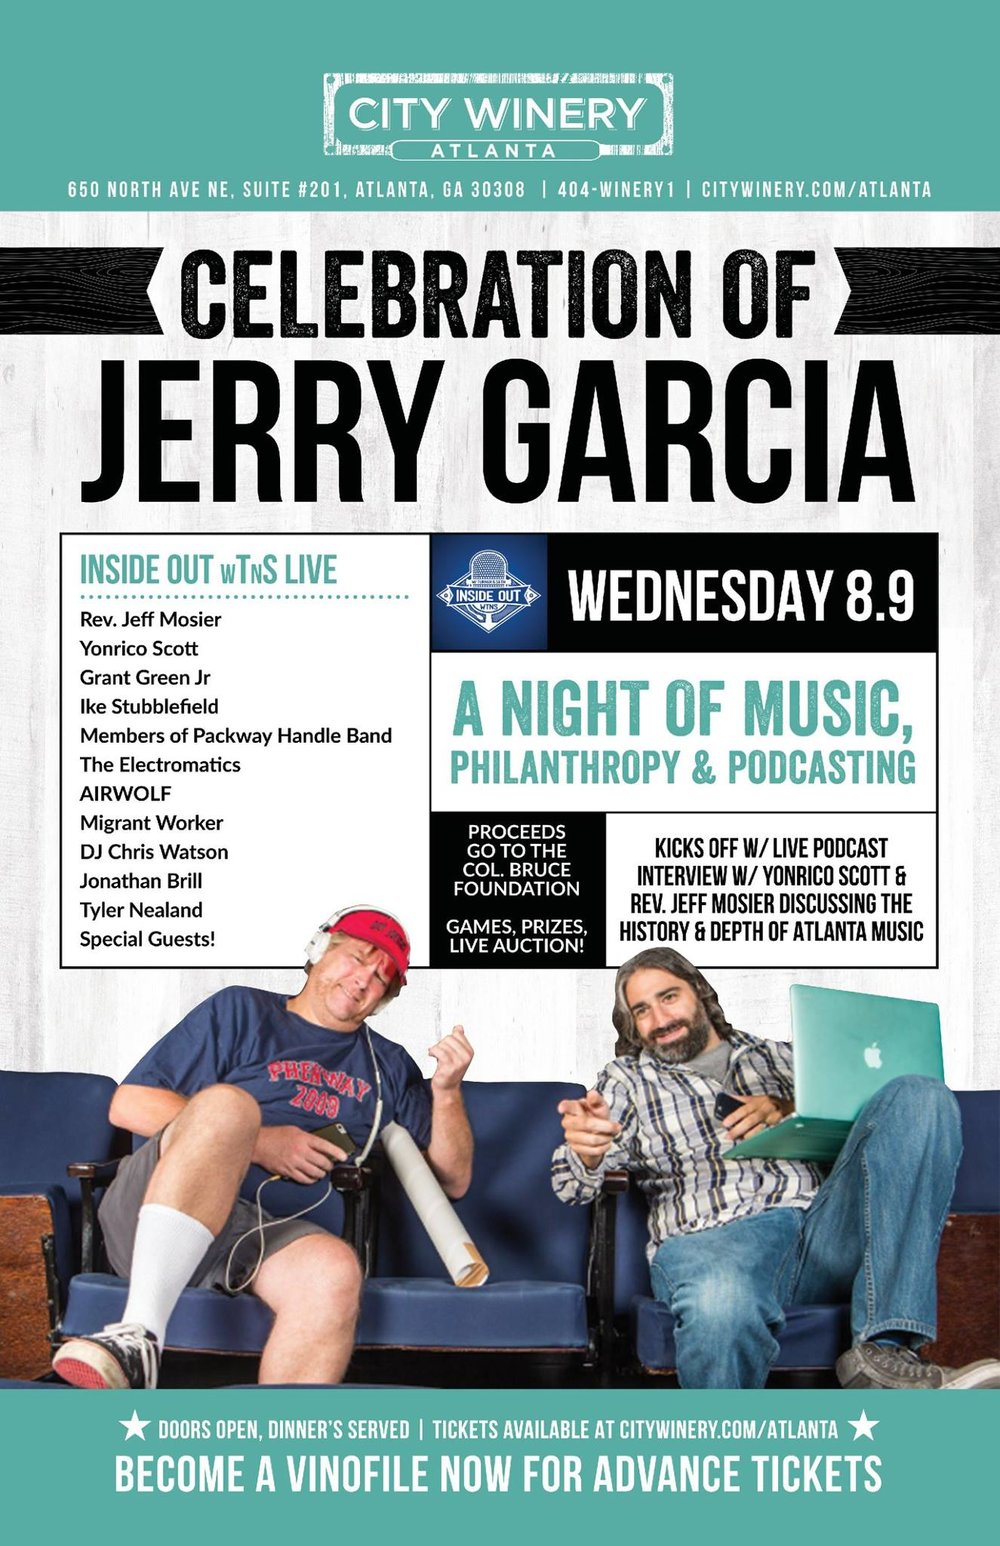 The flyer for our first live event at City Winery Atlanta, with Rev. Jeff Mosier, Yonrico Scott and tons more all in celebration of Jerry Garcia and benefitting the Col. Bruce Foundation